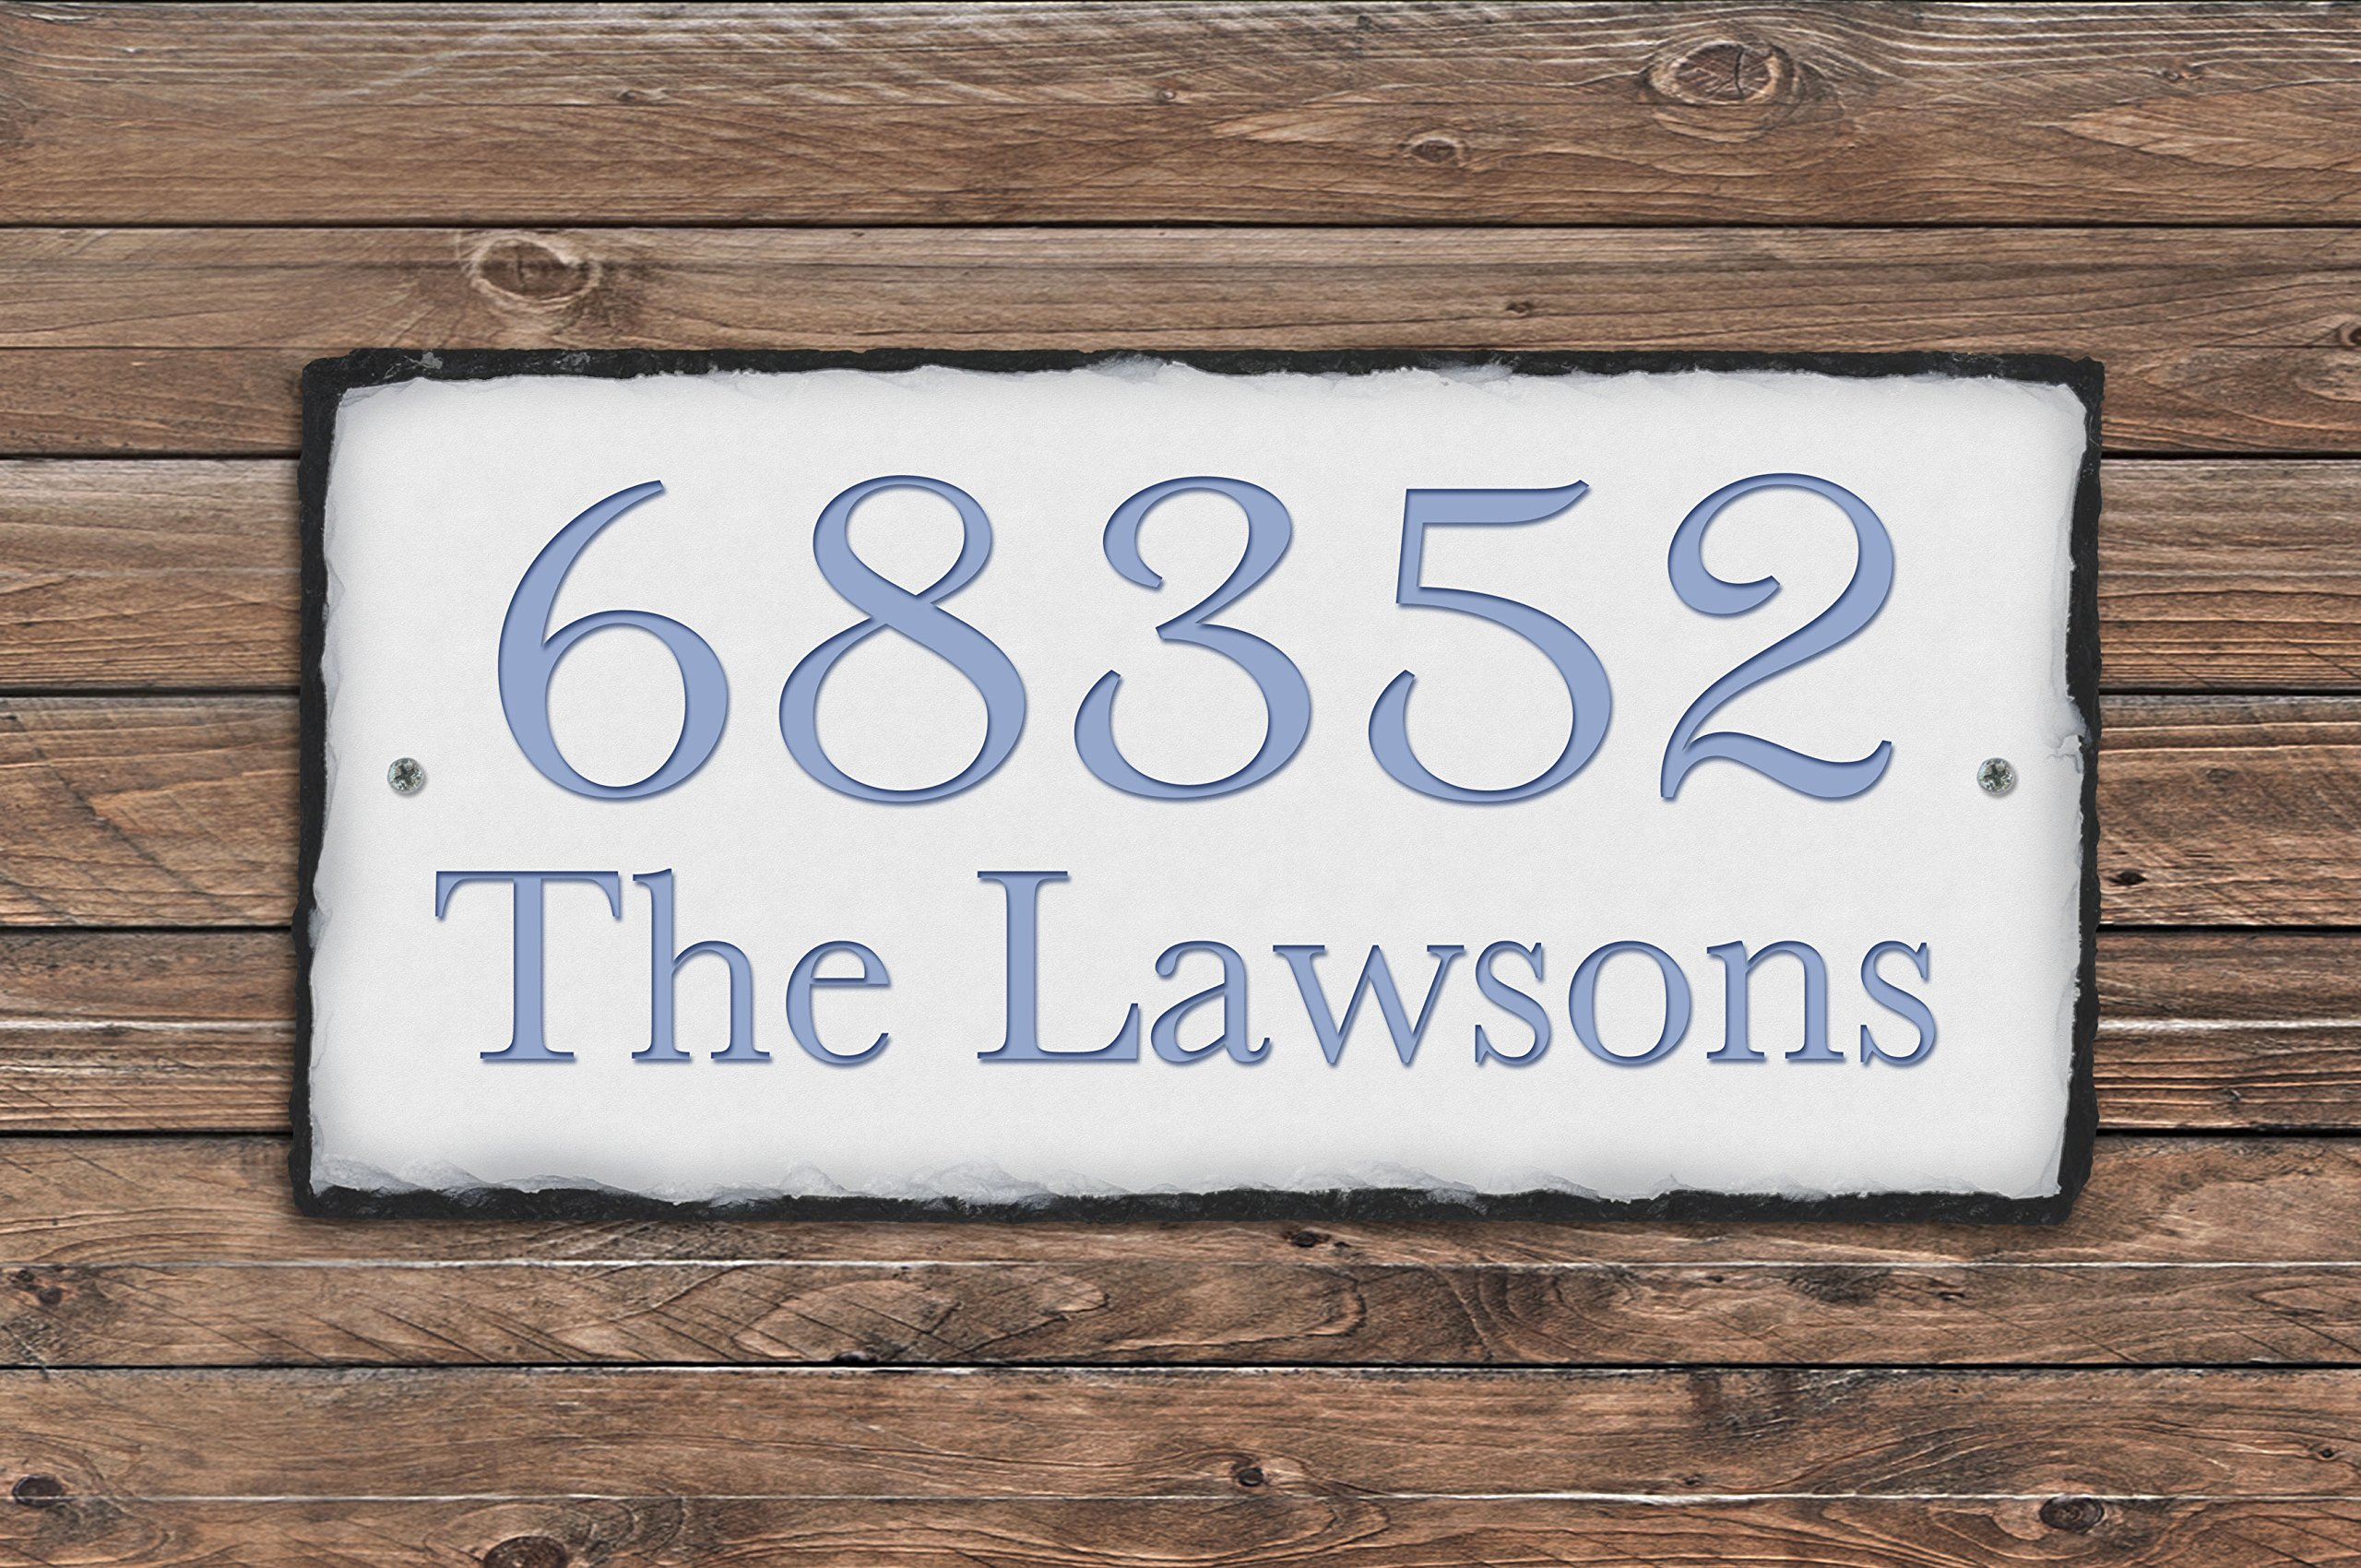 Sassy Squirrel Handcrafted and Personalized Slate House Number sign